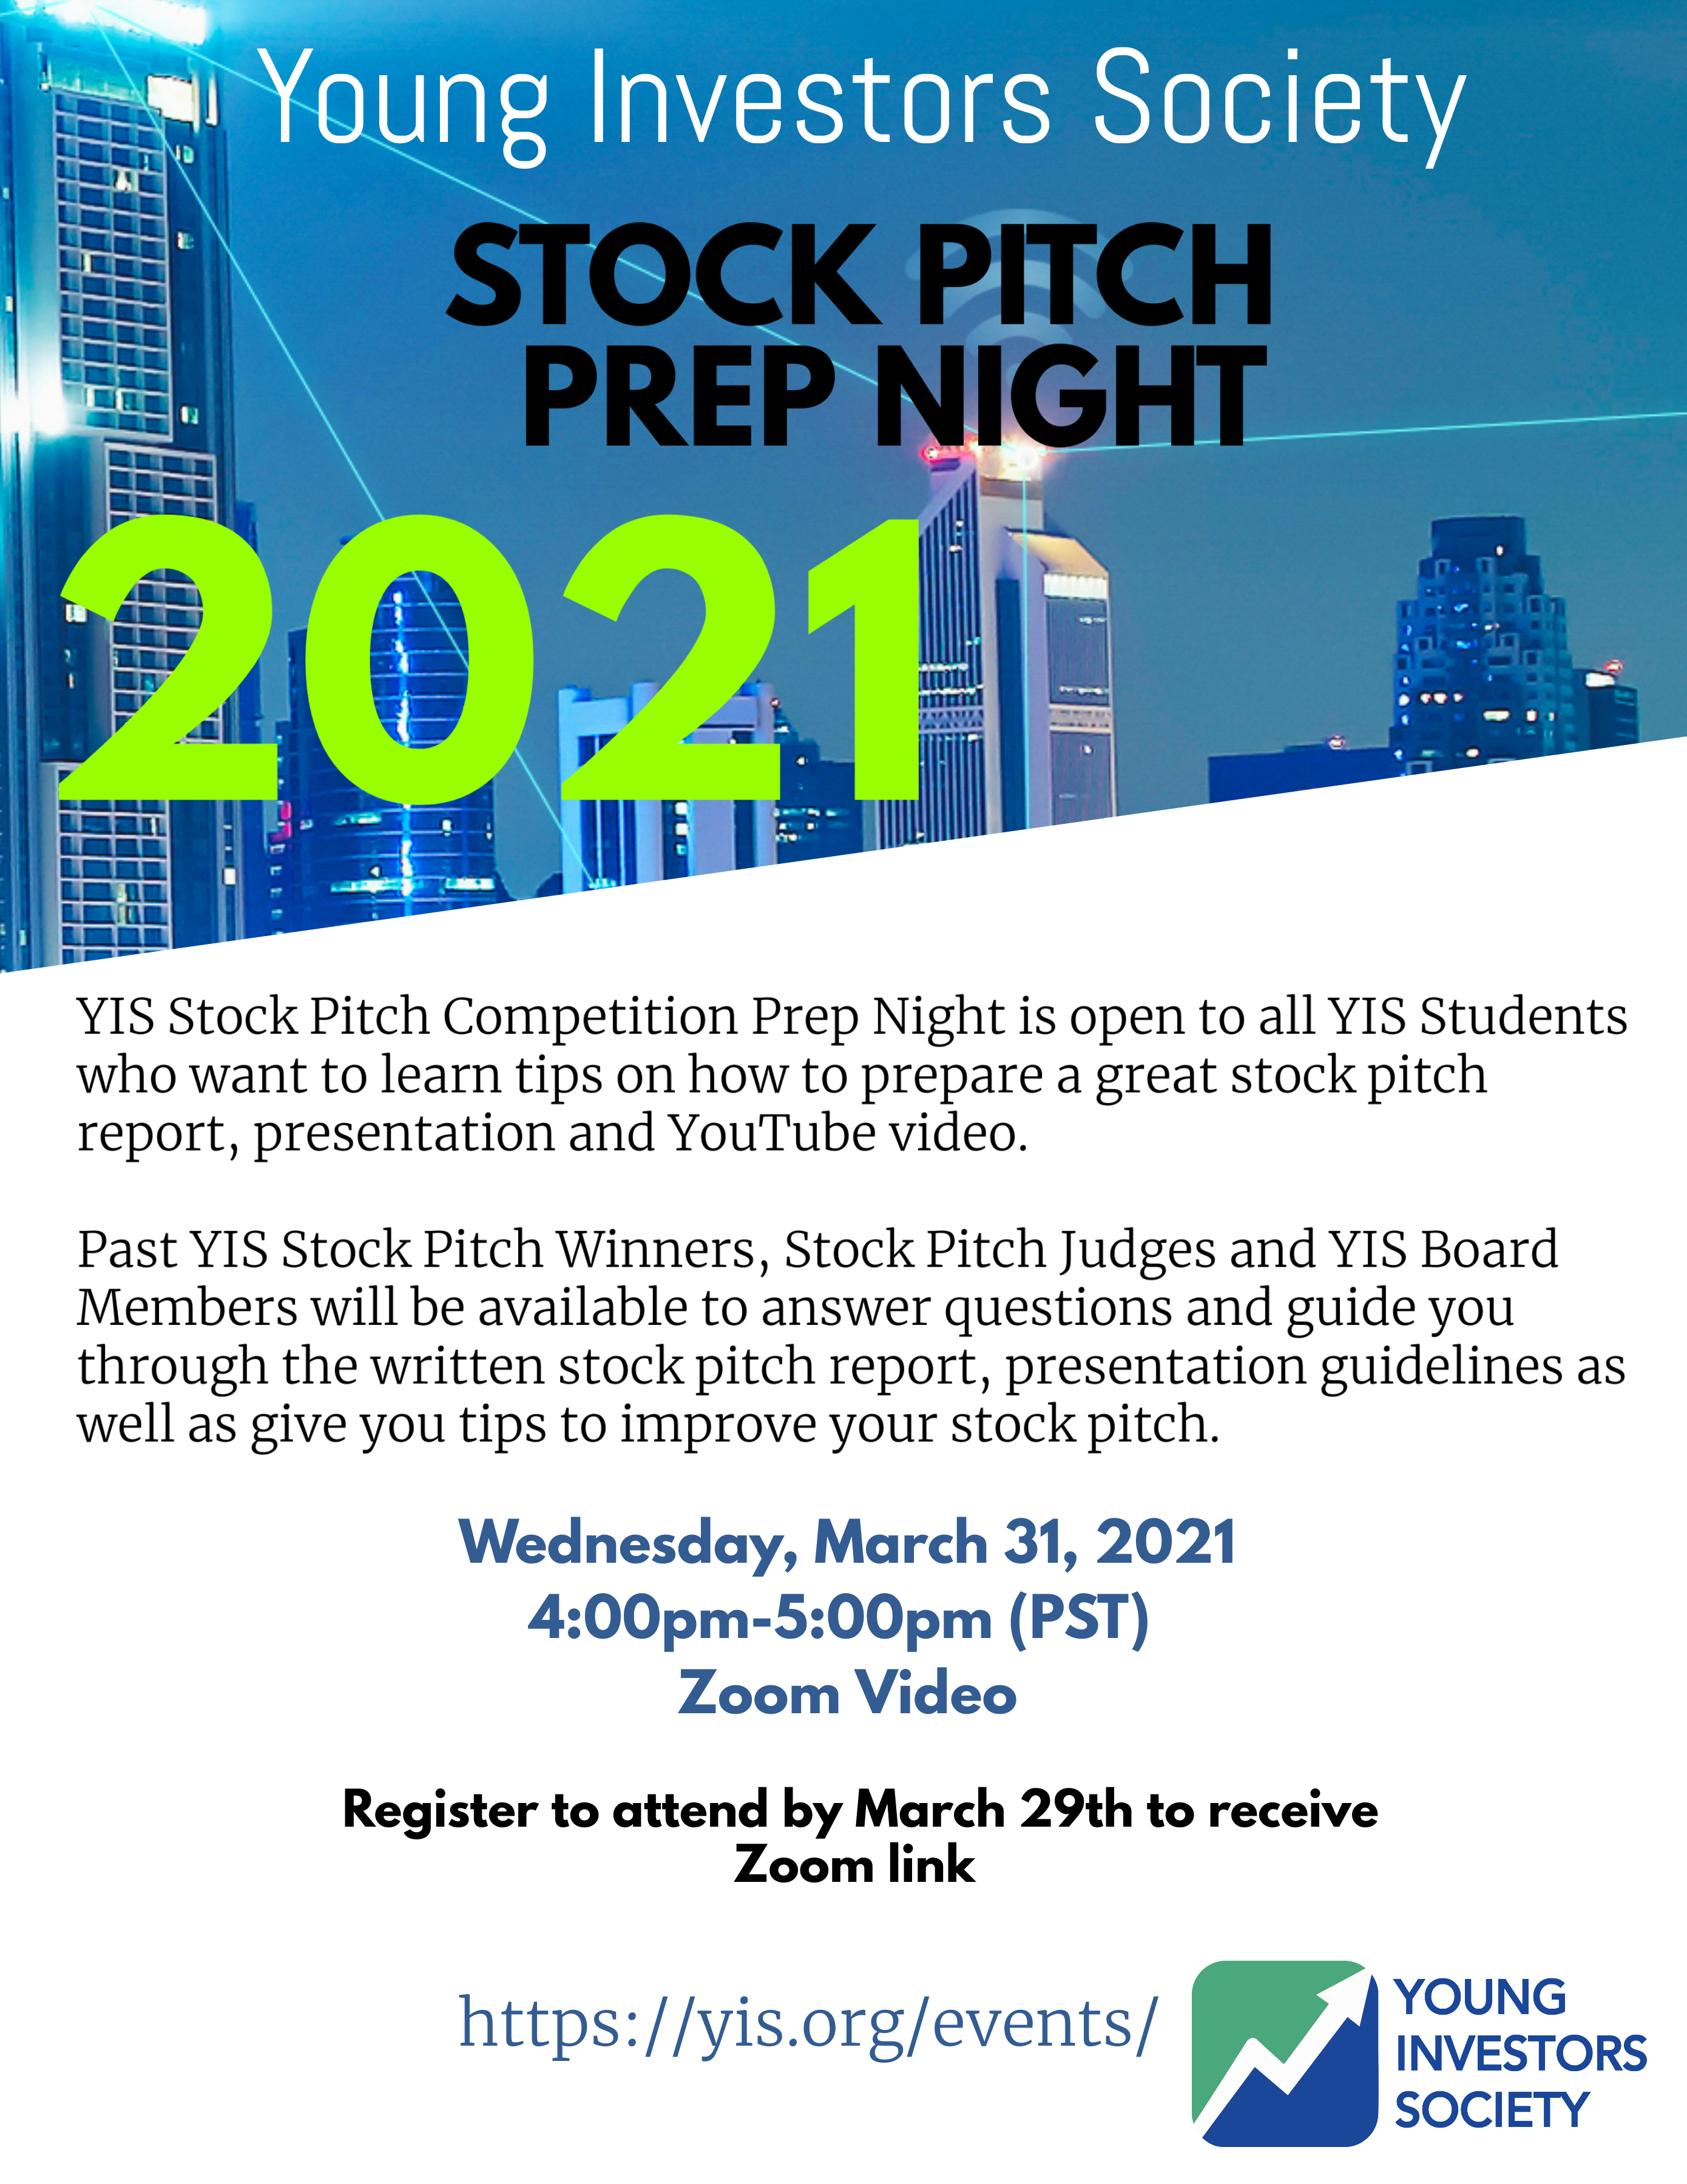 2021 Stock Pitch Prep Night